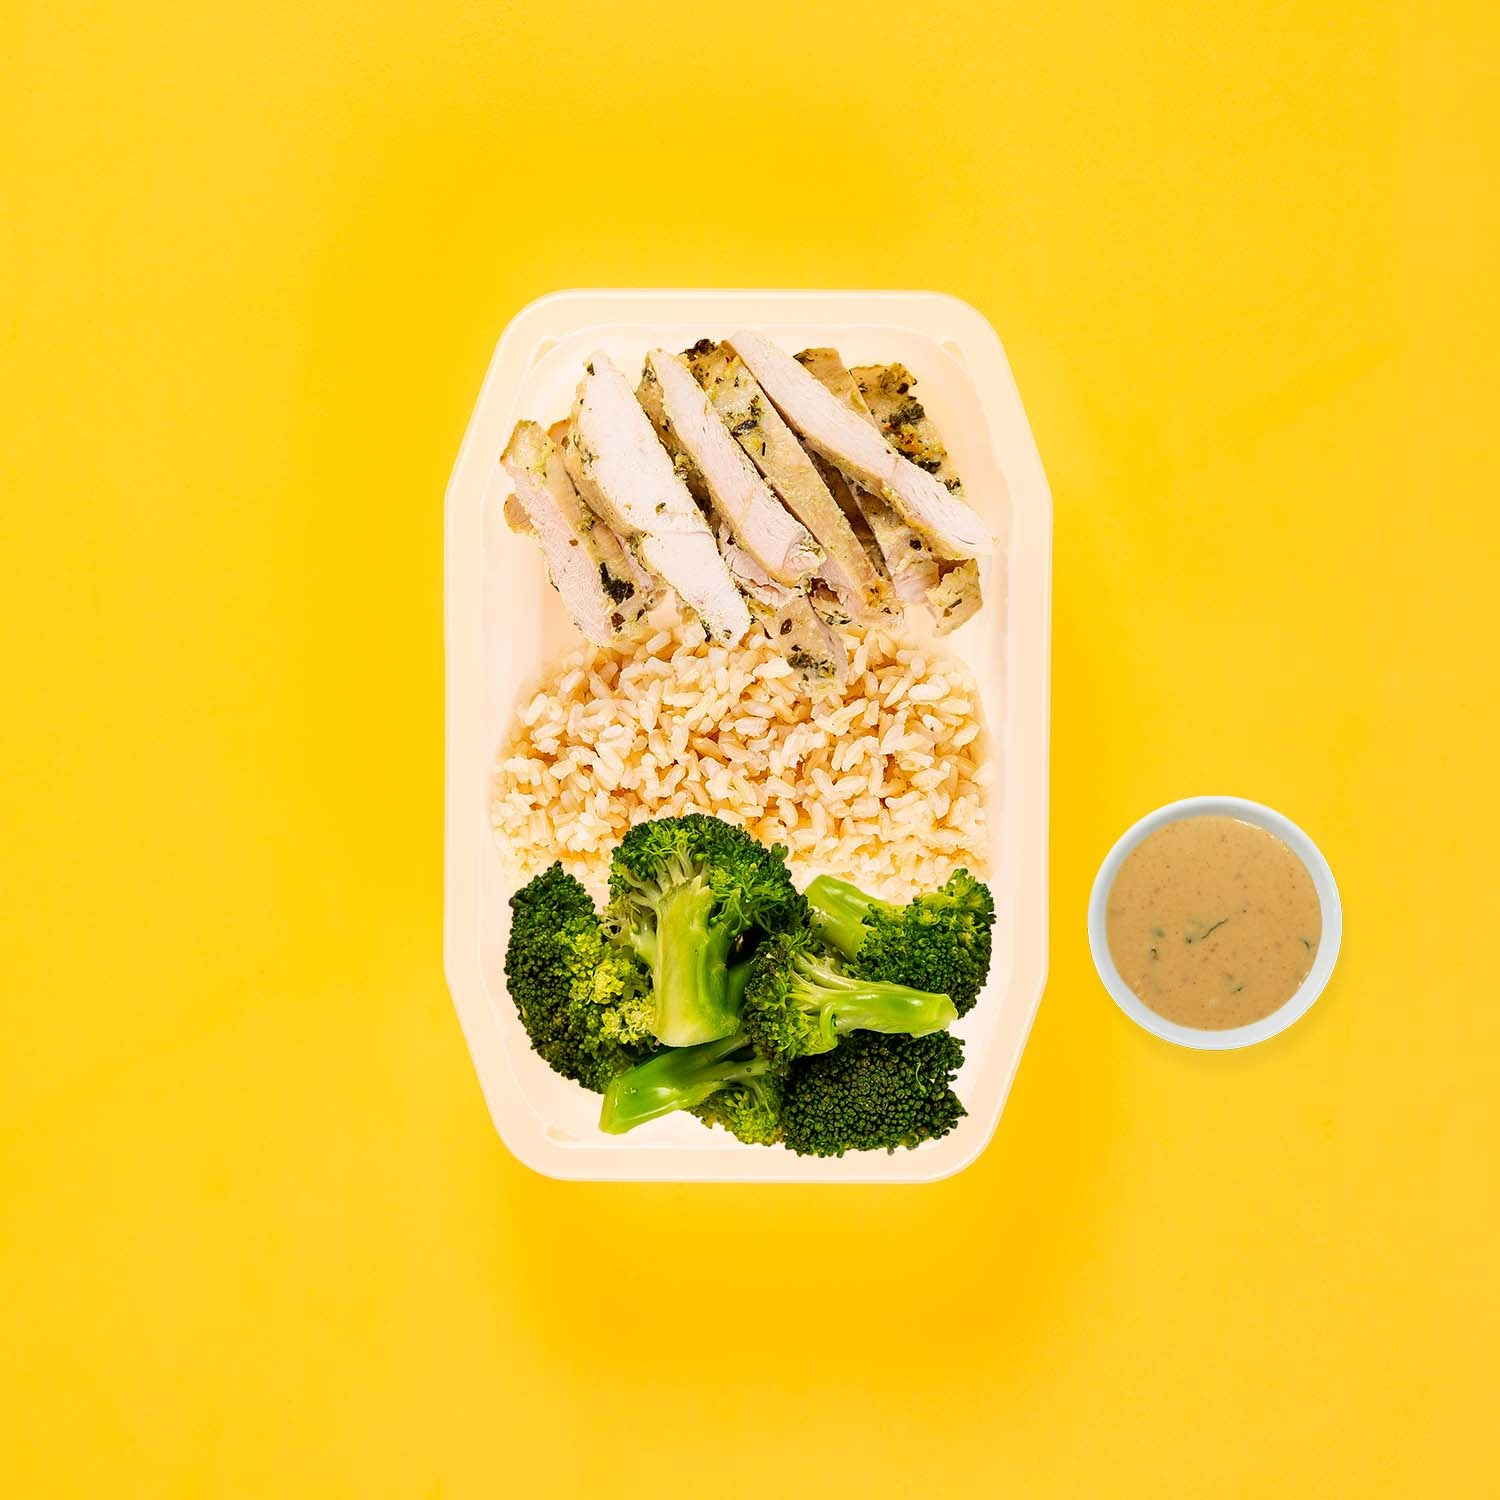 50g Garlic Herb Chicken Breast 100g Brown Rice 200g Broccoli Satay Sauce